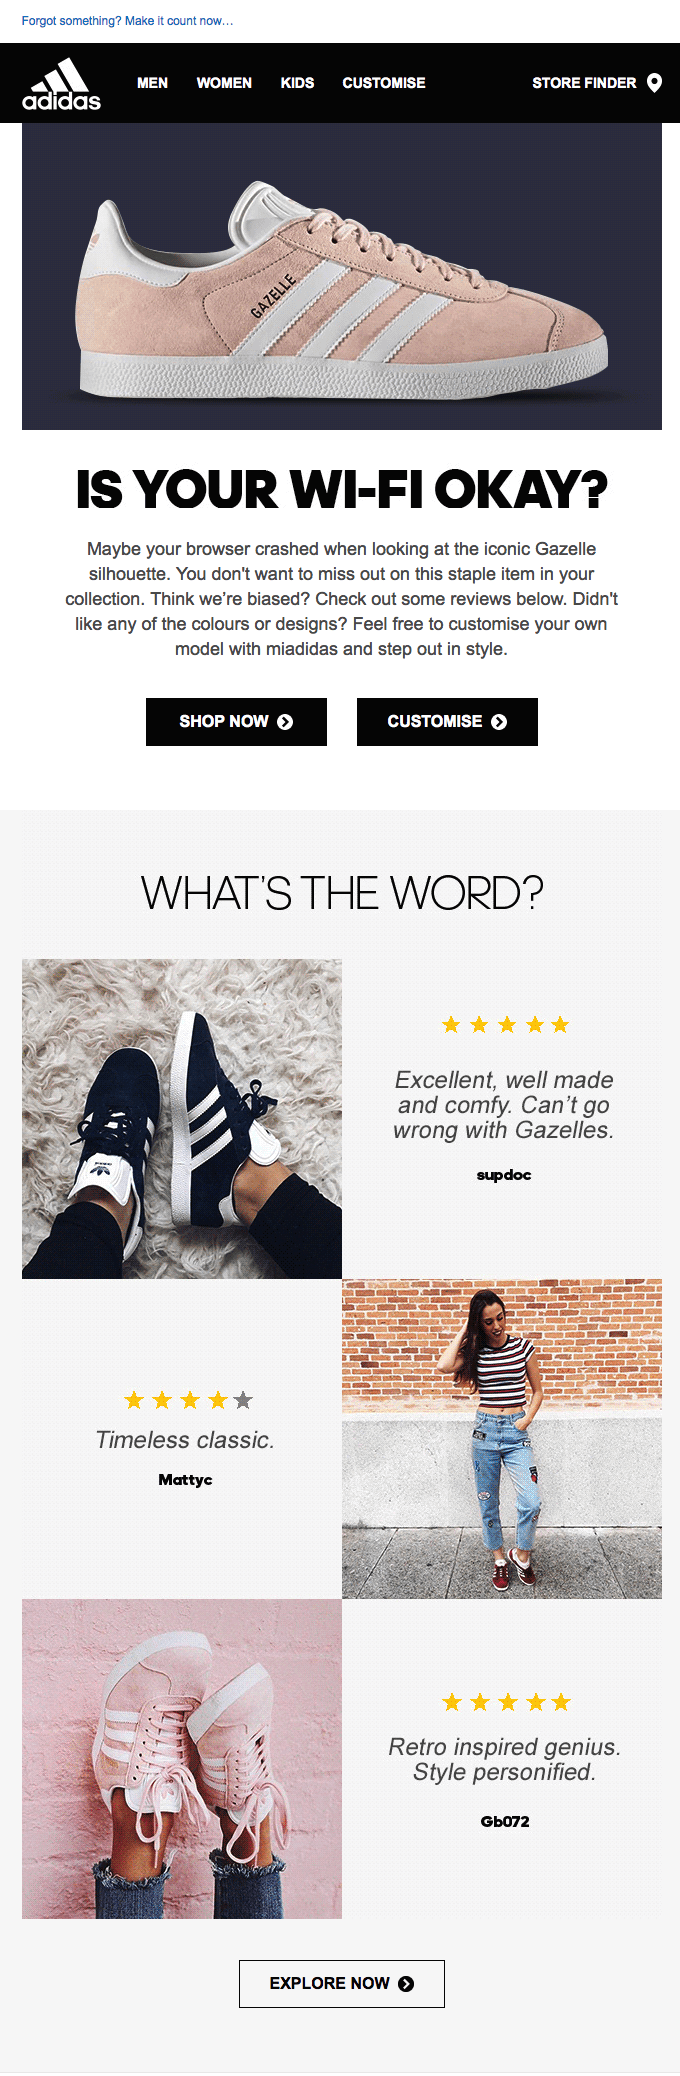 Email ecommerce inspiracion